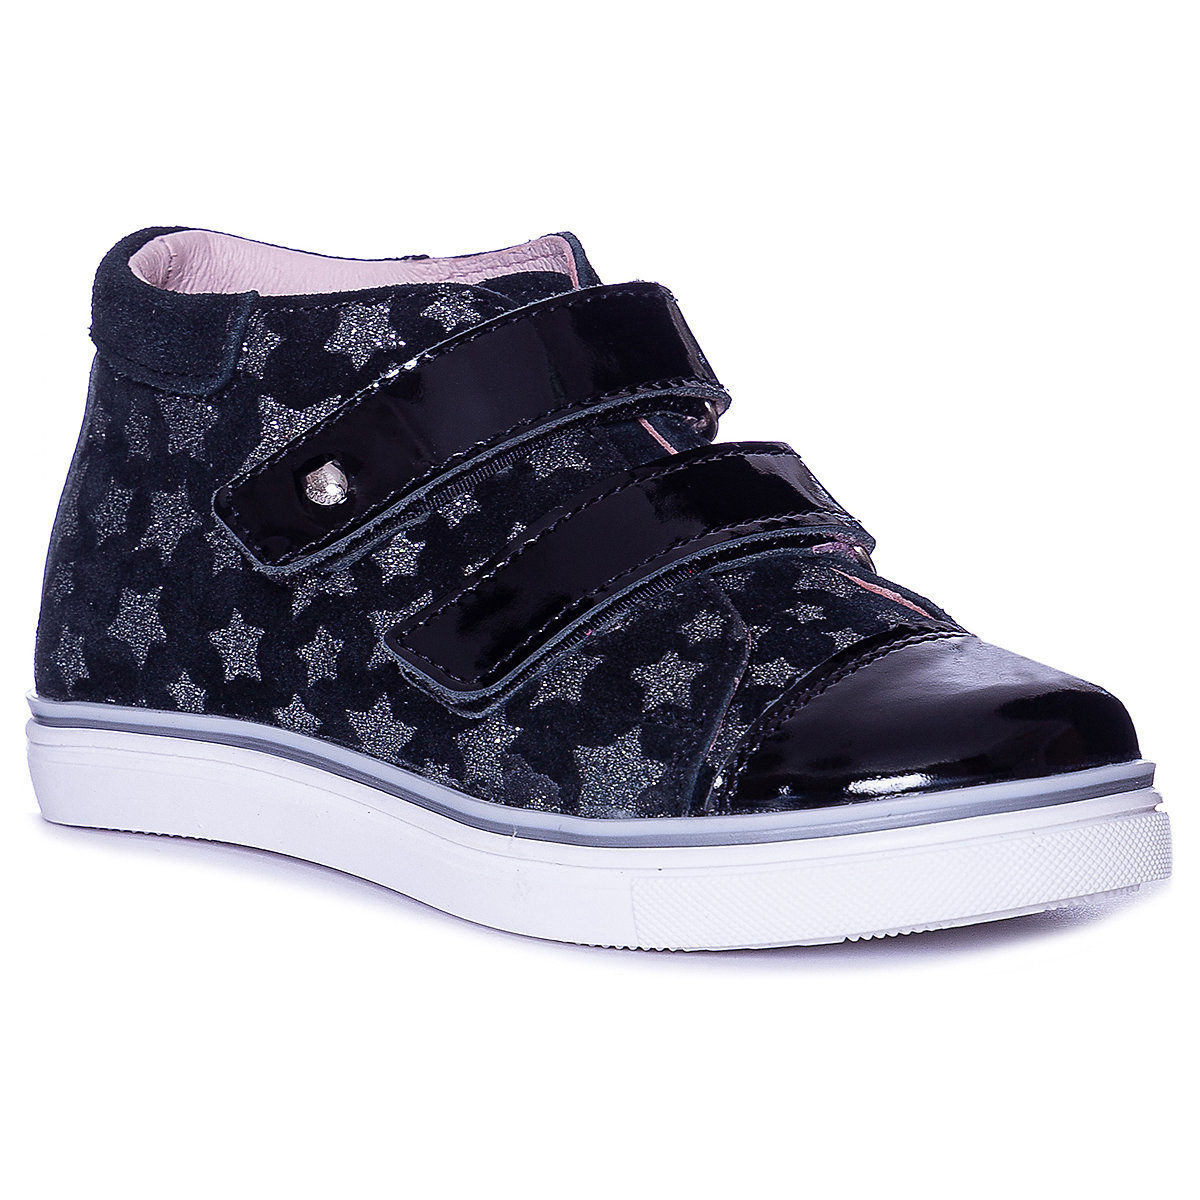 Фото - KOTOFEY Children Casual Shoes 10813955 sneakers running shoes for children Black sport Girls Leather wen design hand painted black shoes ghostbusters high top lace up mens canvas athletic shoes womens flat bottom sneakers